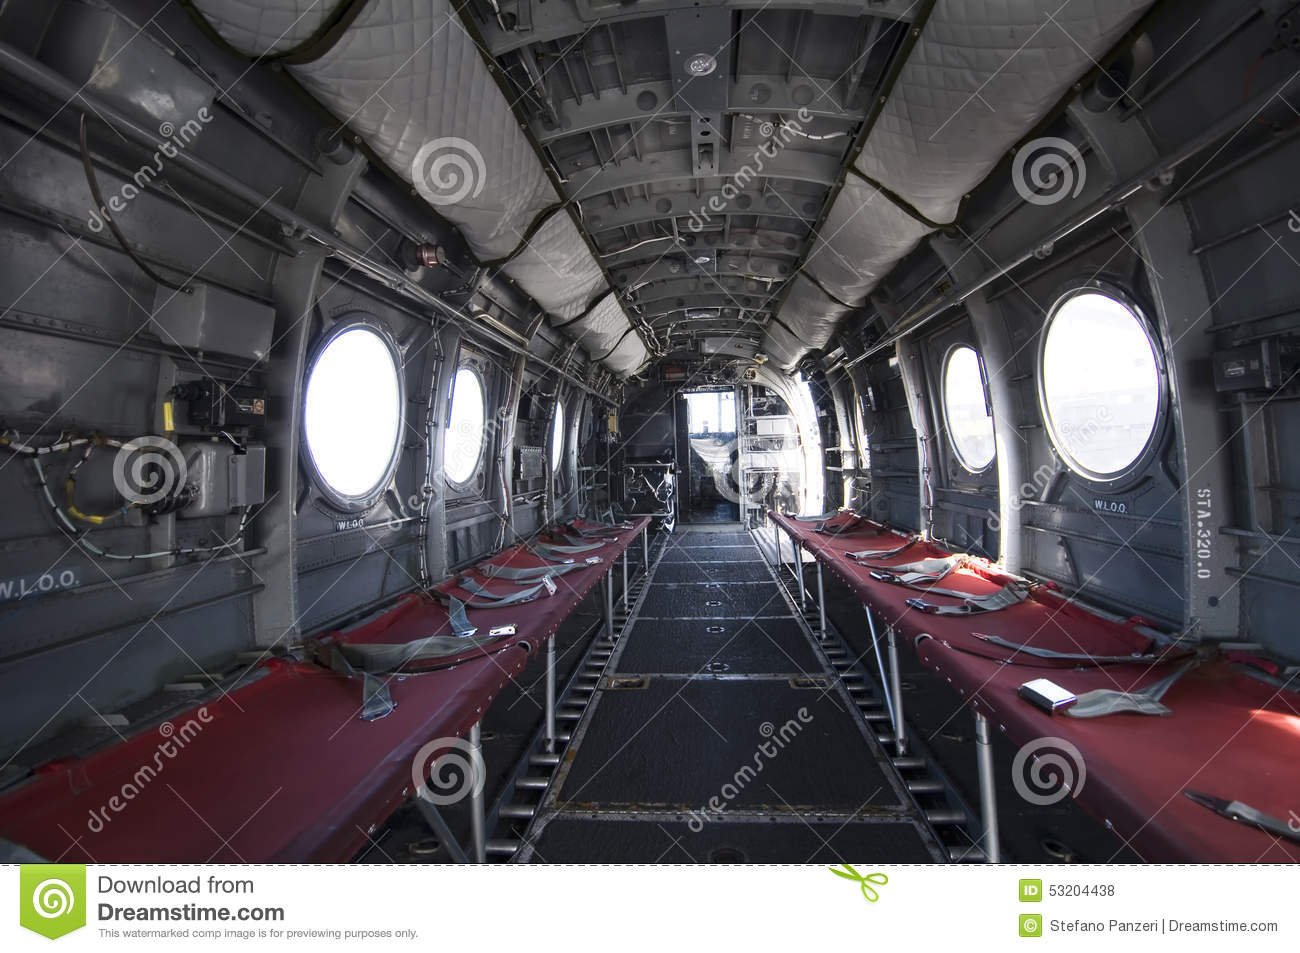 helicopter seats 8 with Editorial Stock Photo Inside Chinook Helicopter Particular Aboard Midway Seacarrier Image53204438 on Stock Photo Santa Claus Flying Airplane Presents Cartoon Illustration Jolly Character Waving Words Ho Ho Ho Image56946478 besides Pictures Bell Targets Military Market With 525 Heli 440587 further Editorial Stock Photo Inside Chinook Helicopter Particular Aboard Midway Seacarrier Image53204438 besides 362069357182 together with Multibody Dynamics.